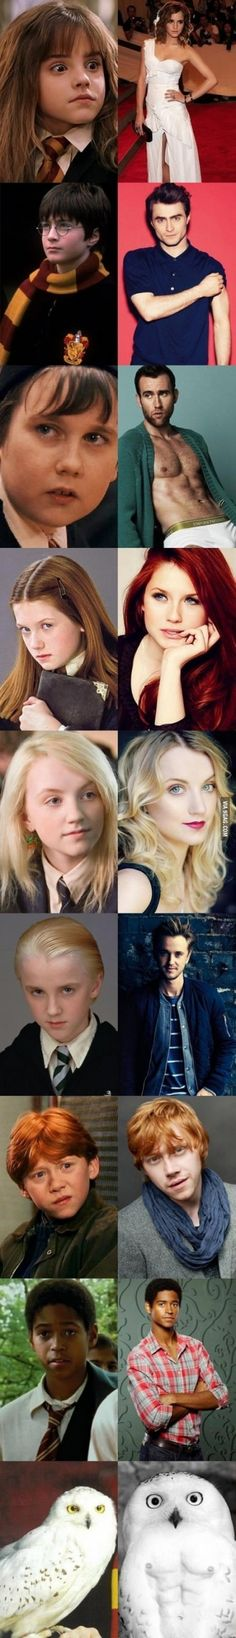 Everyone in Harry Potter has changed even hedwig (i'm pretty sure that hedwig's a girl